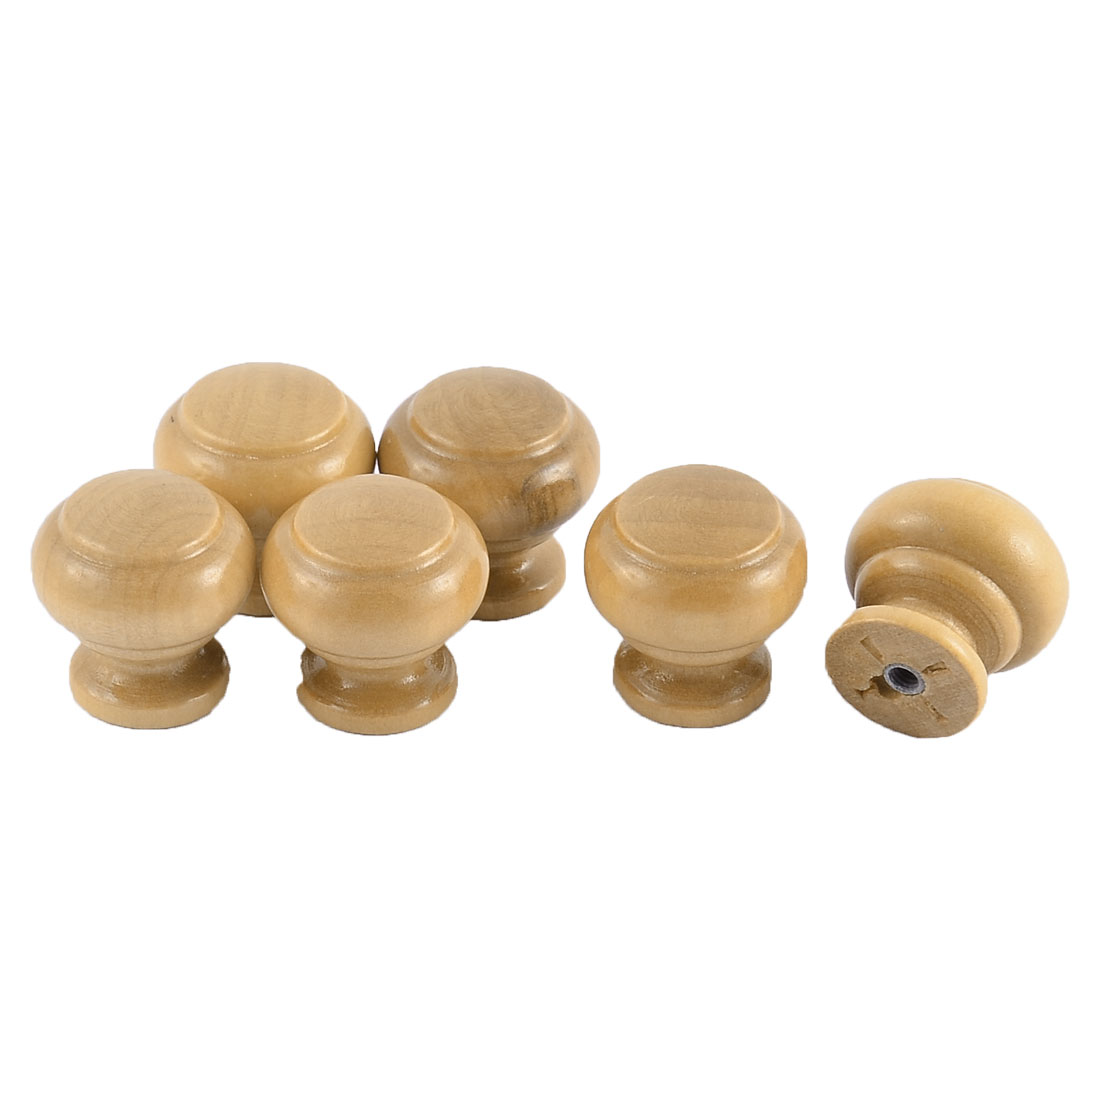 25mm Dia Round Head Drawer Cupboard Door Handle Grip Wooden Pull Knob 6pcs